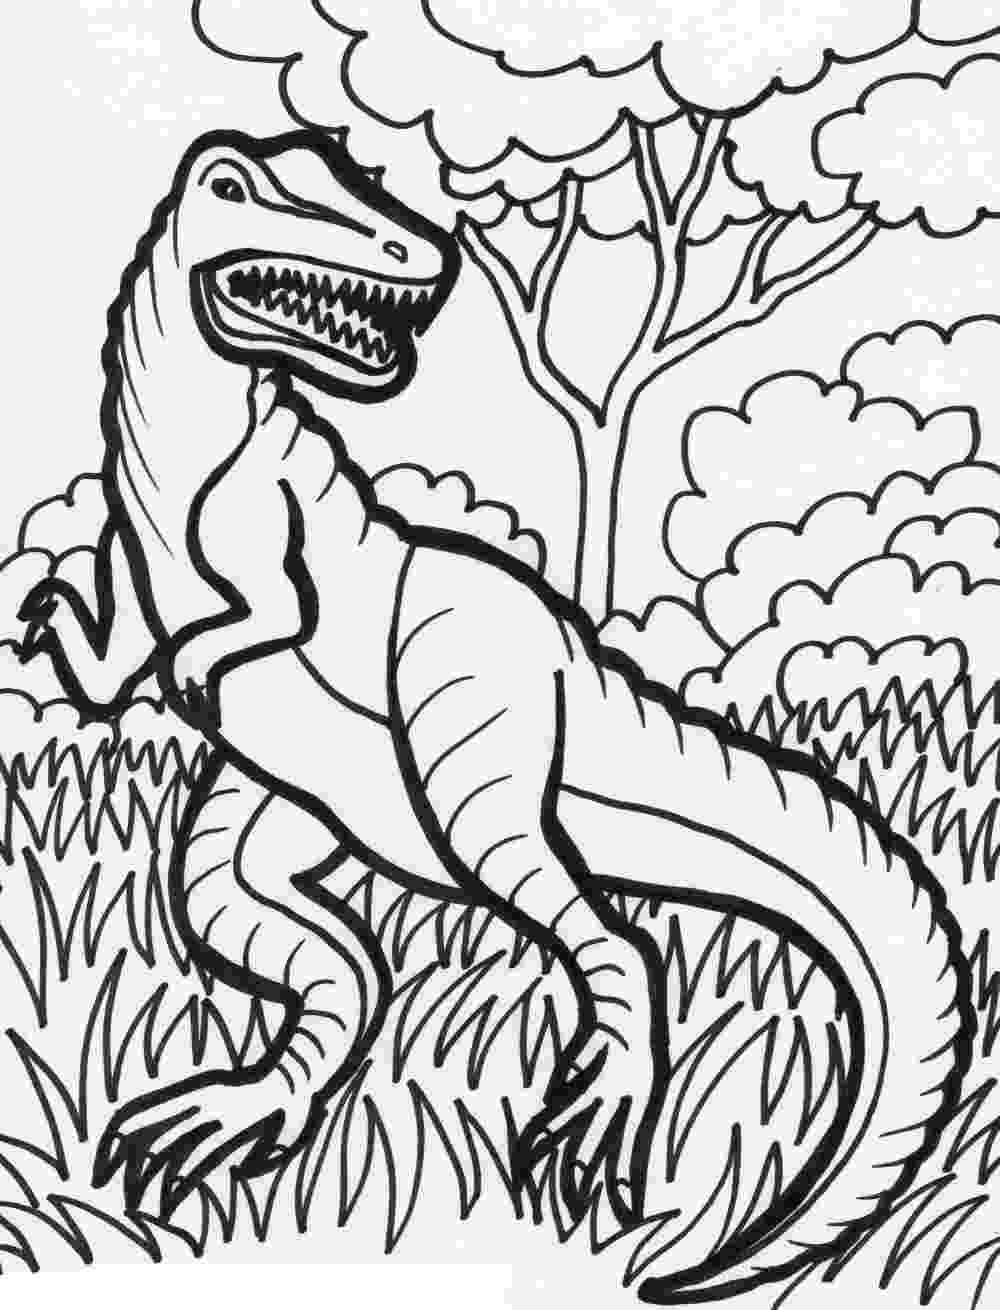 dinosaur coloring pages for toddlers cute little dinosaur coloring page free printable for toddlers pages coloring dinosaur